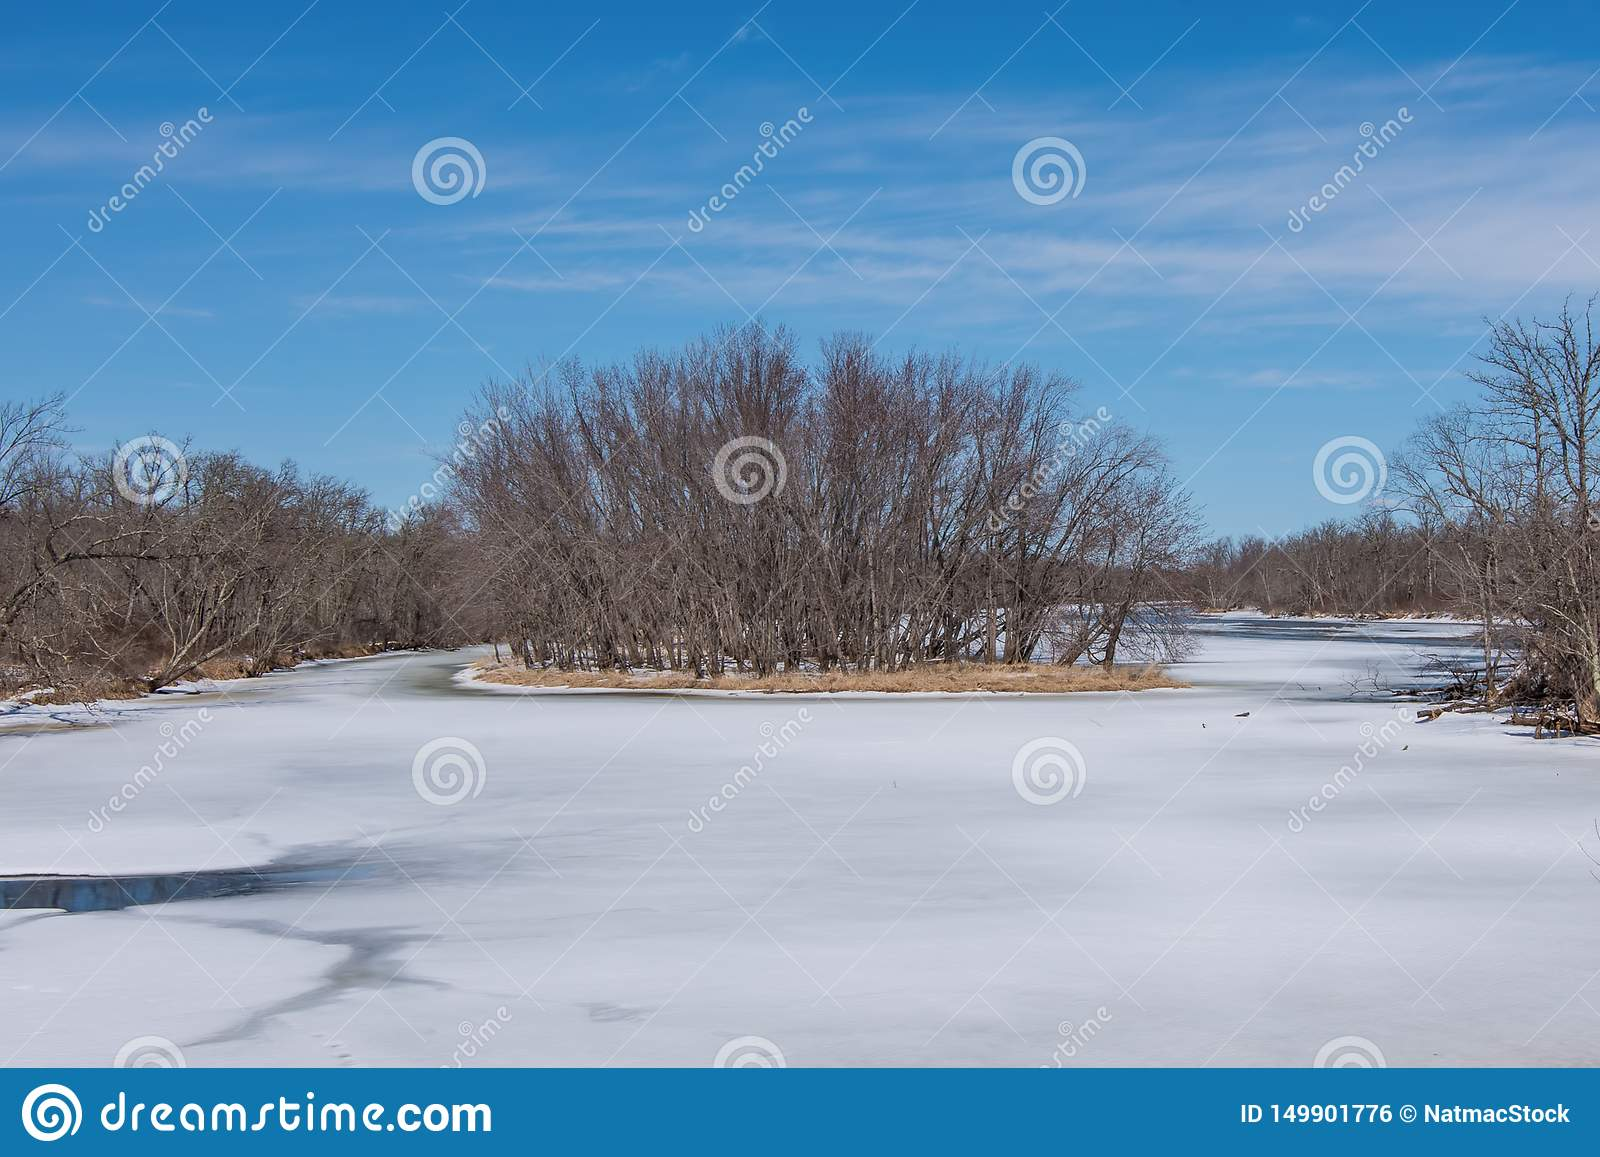 Wide angle landscape of an island in the vast St. Croix River with Wisconsin on the left shoreline and Minnesota on the right shor